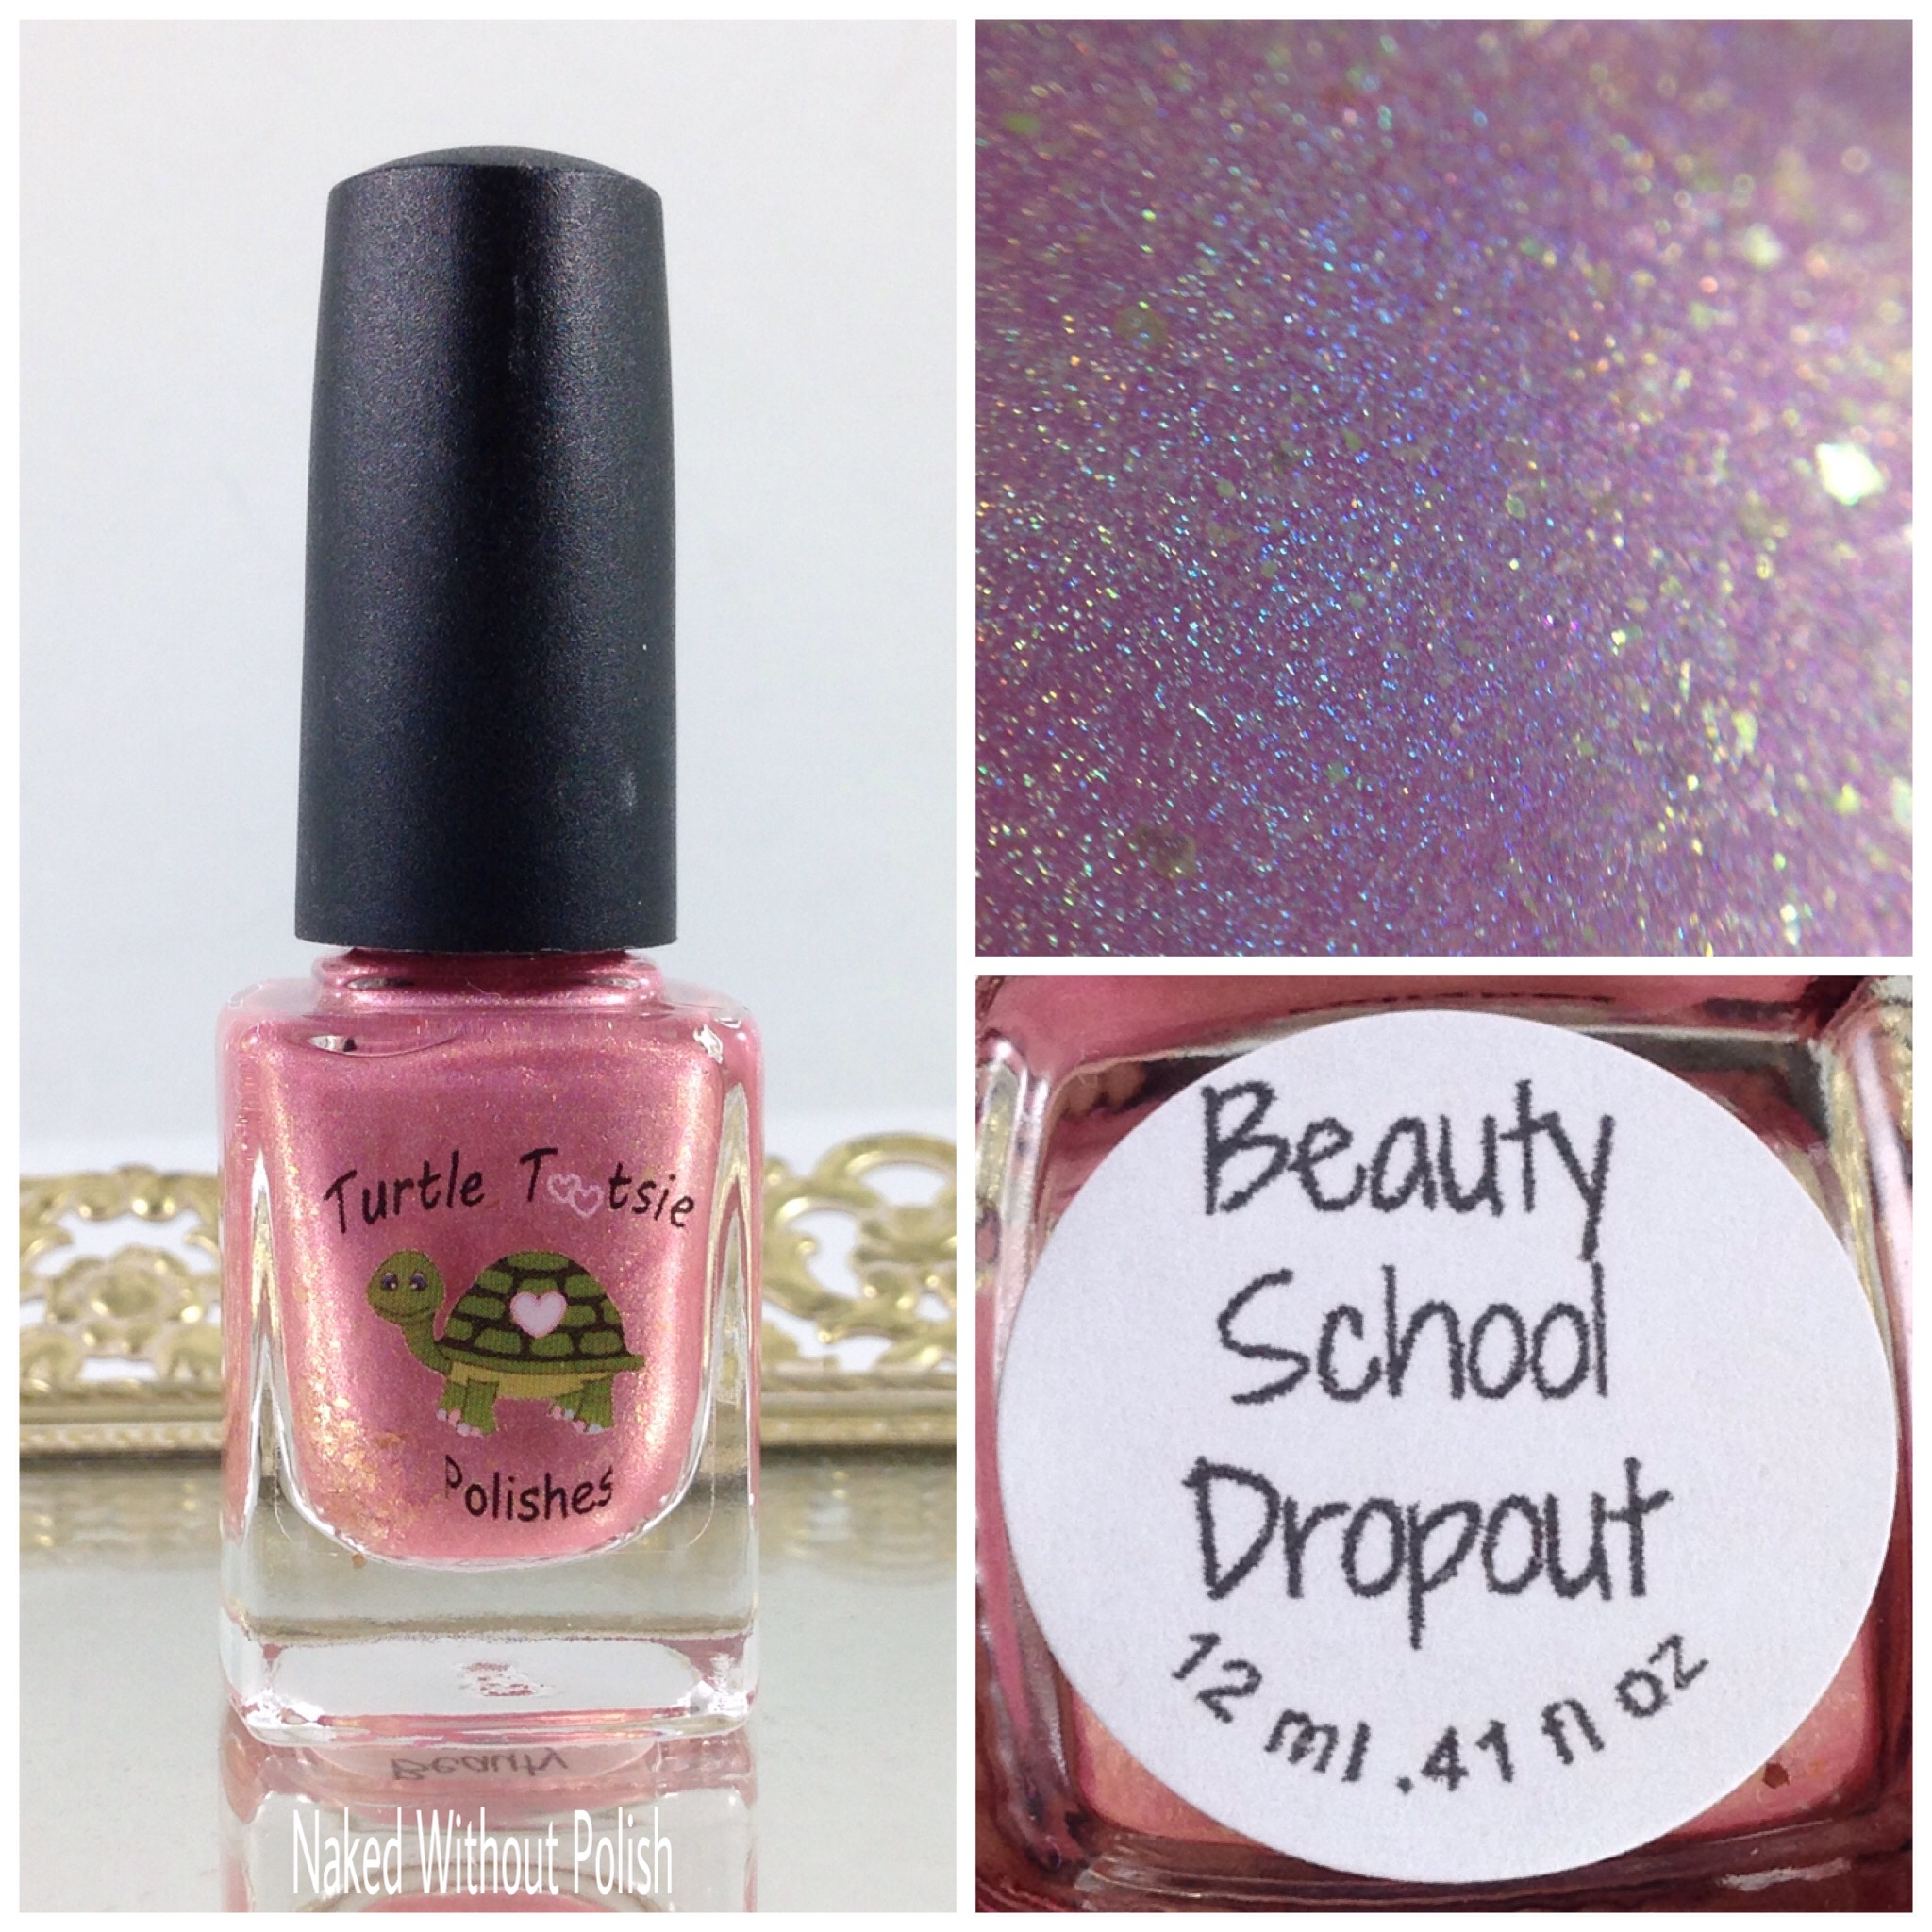 Turtle-Tootsie-Polishes-Beauty-School-Dropout-1